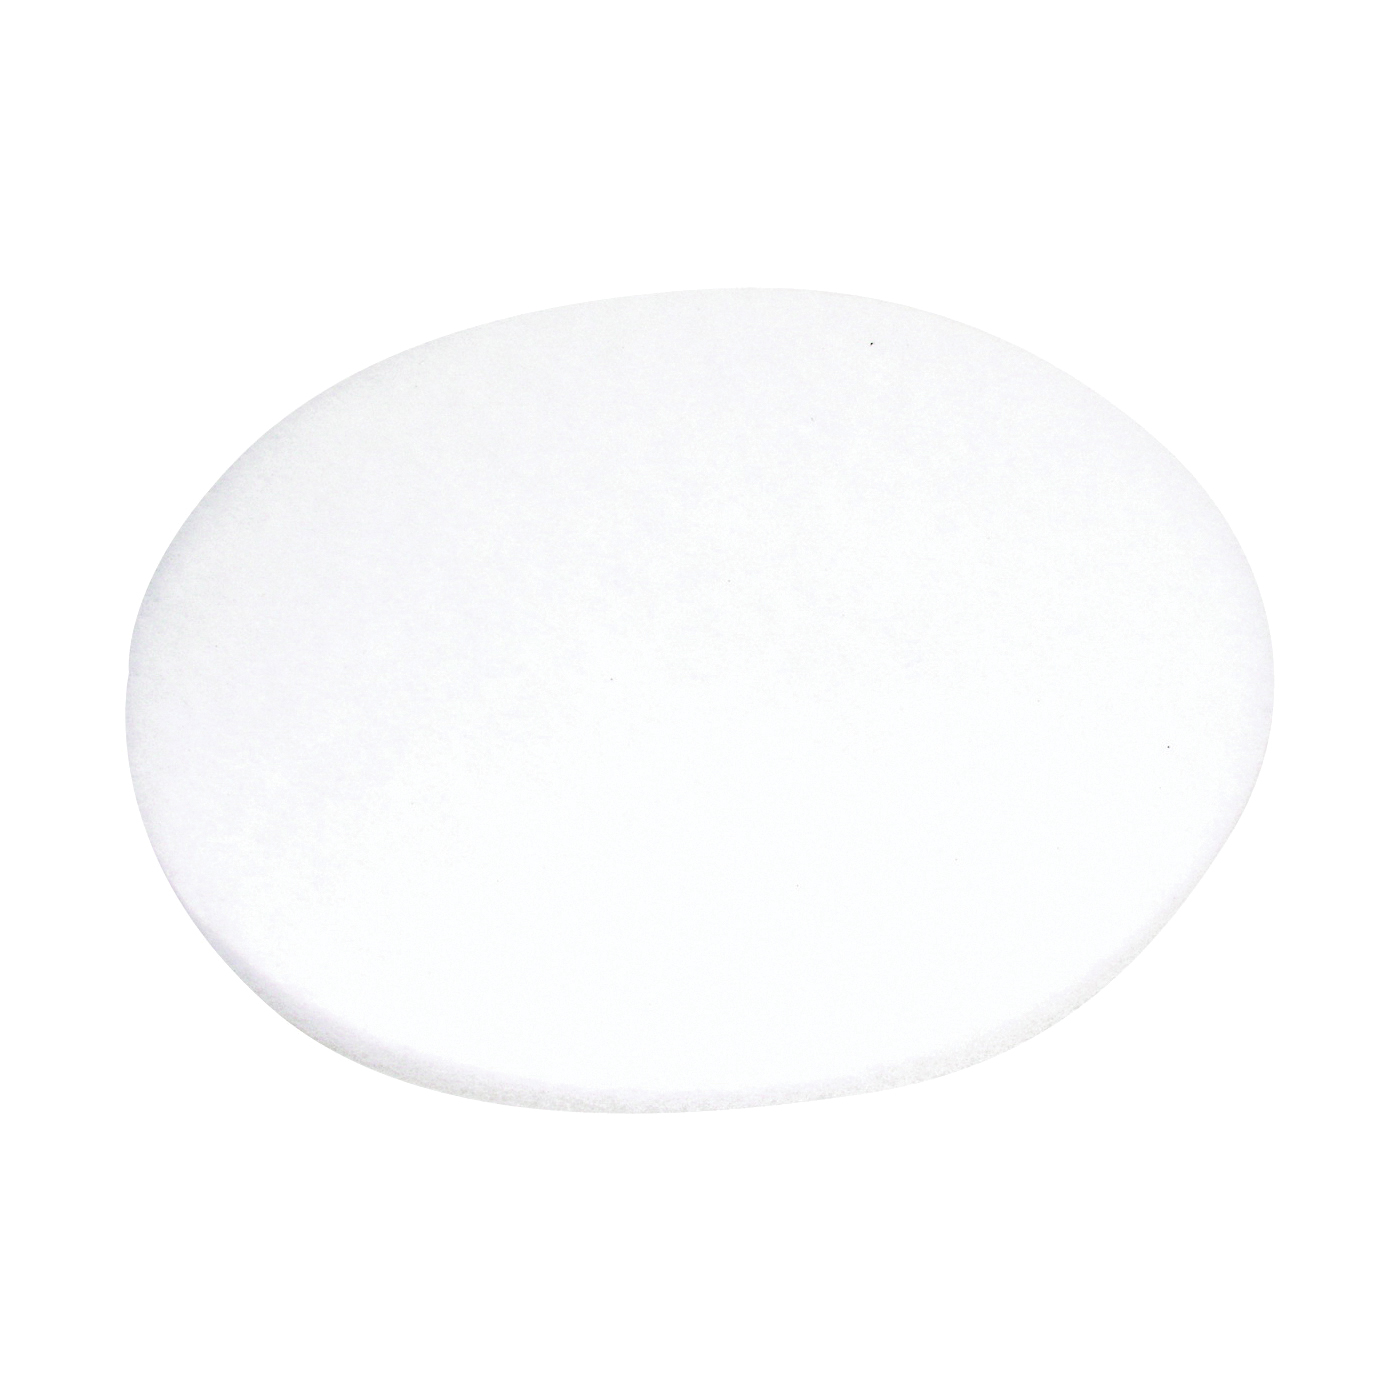 Picture of NORTH AMERICAN PAPER 422214 Polishing Pad, White